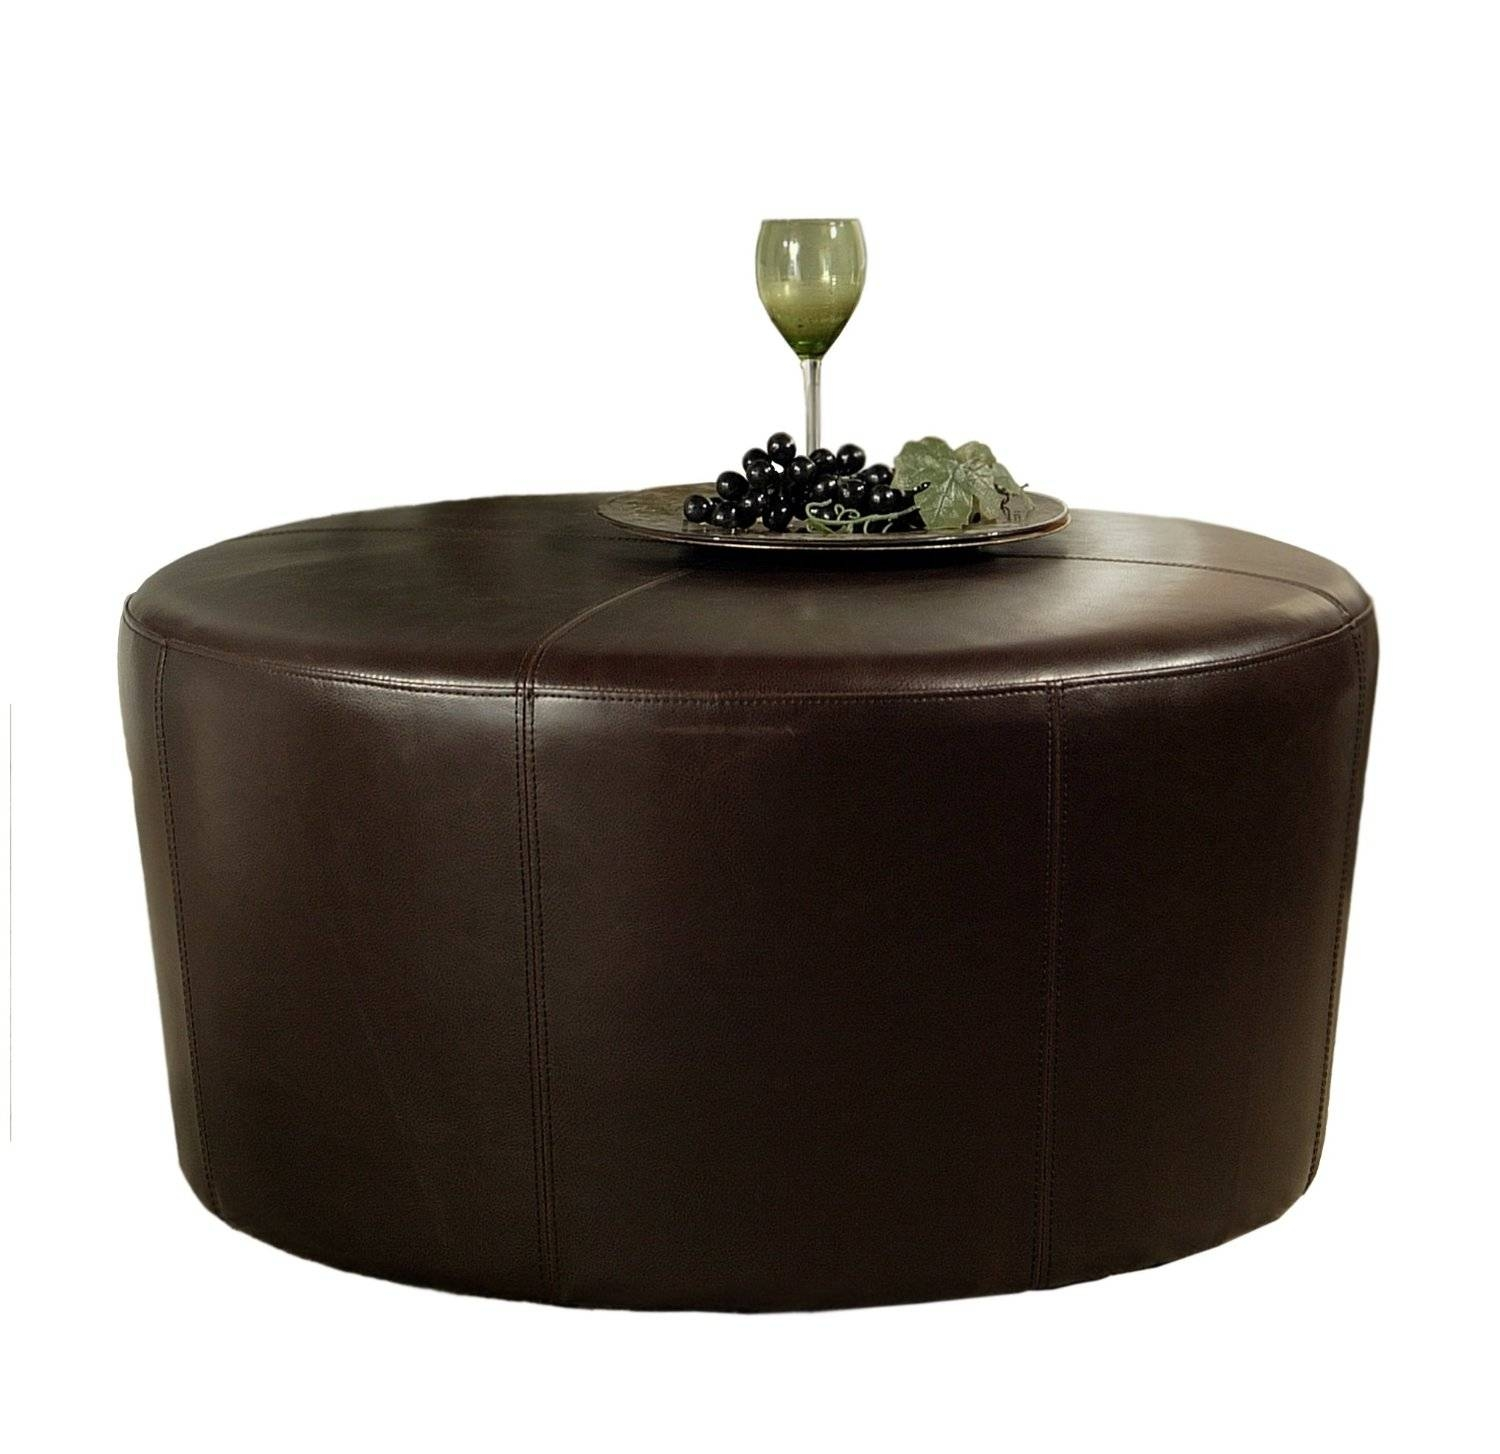 Round Ottoman Coffee Table | Home Designjohn with Green Ottoman Coffee Tables (Image 26 of 30)